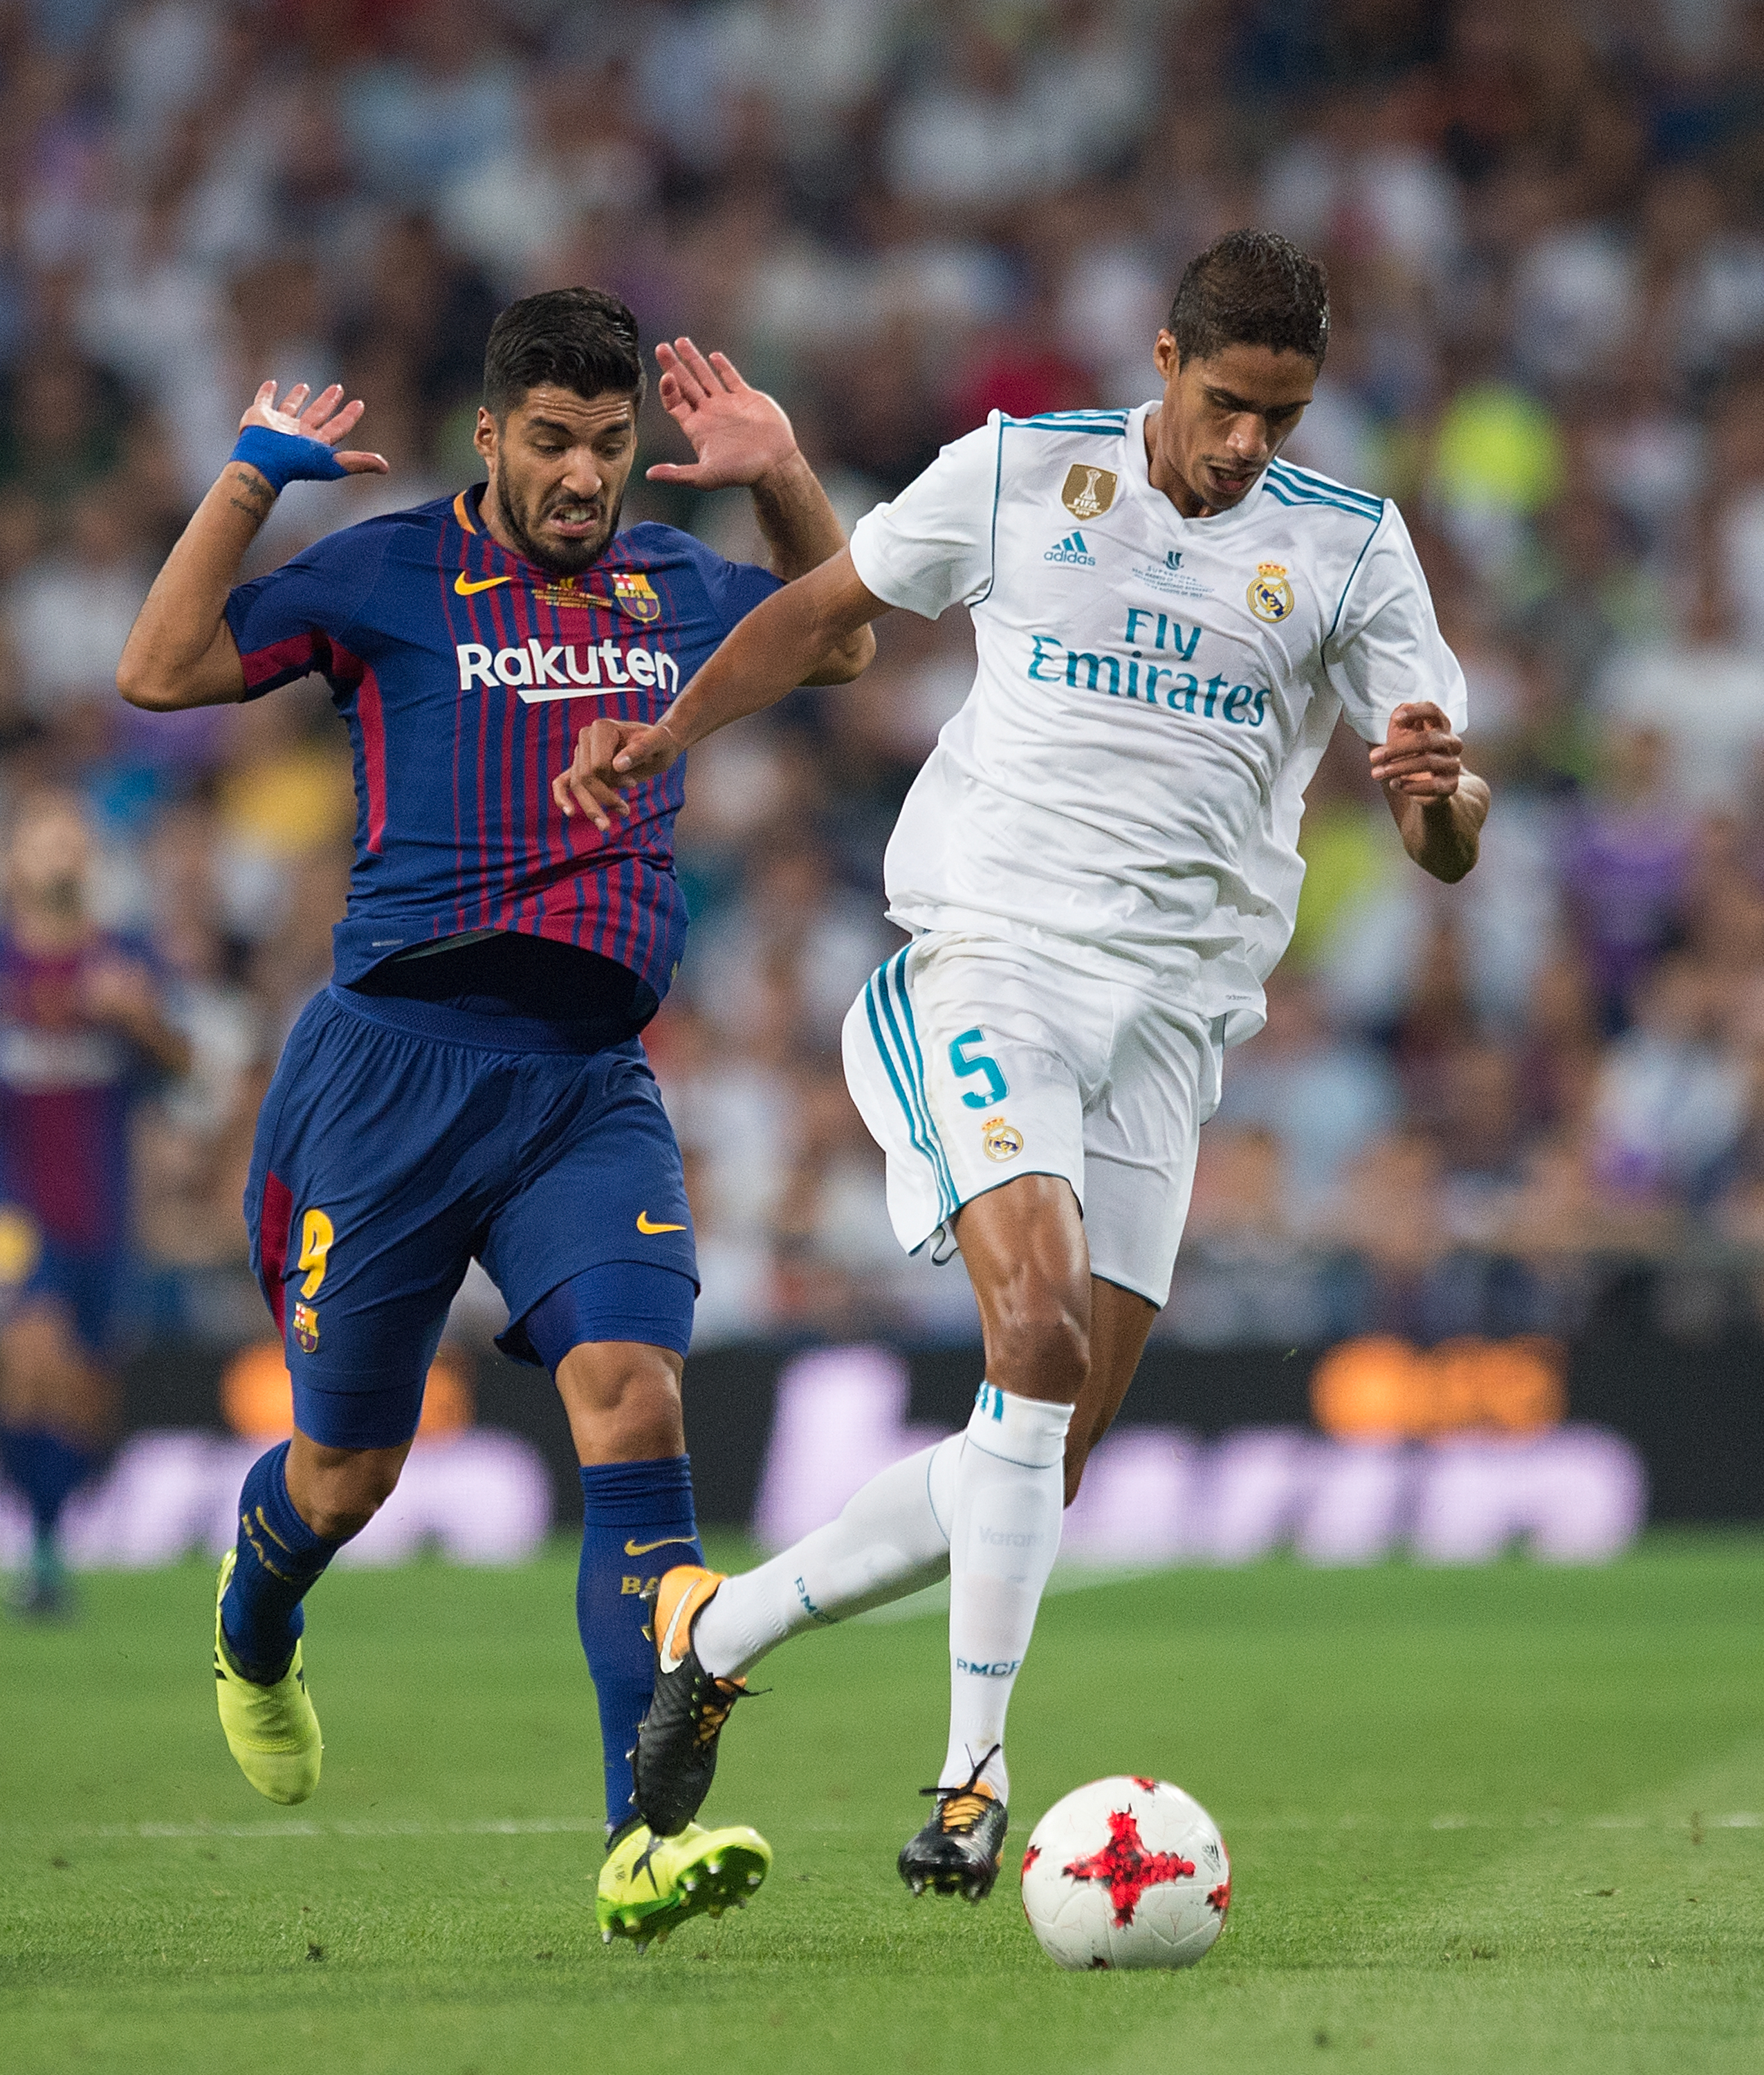 Apoel Vs Barcelona Score Grades And Reaction From: Managing Madrid, A Real Madrid Community